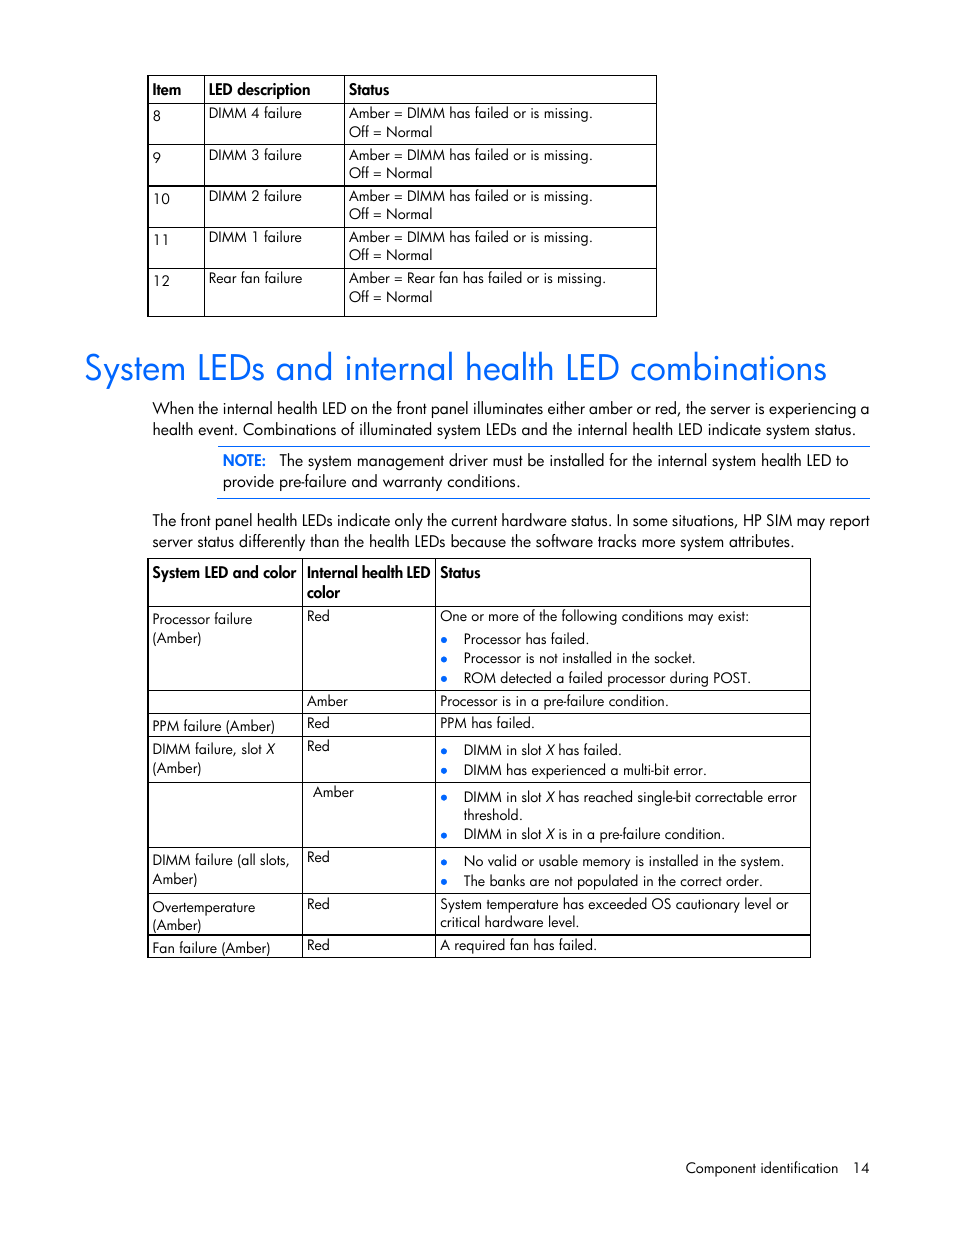 System Leds And Internal Health Led Combinations Hp Proliant Ml310 G5p Server User Manual Page 14 103